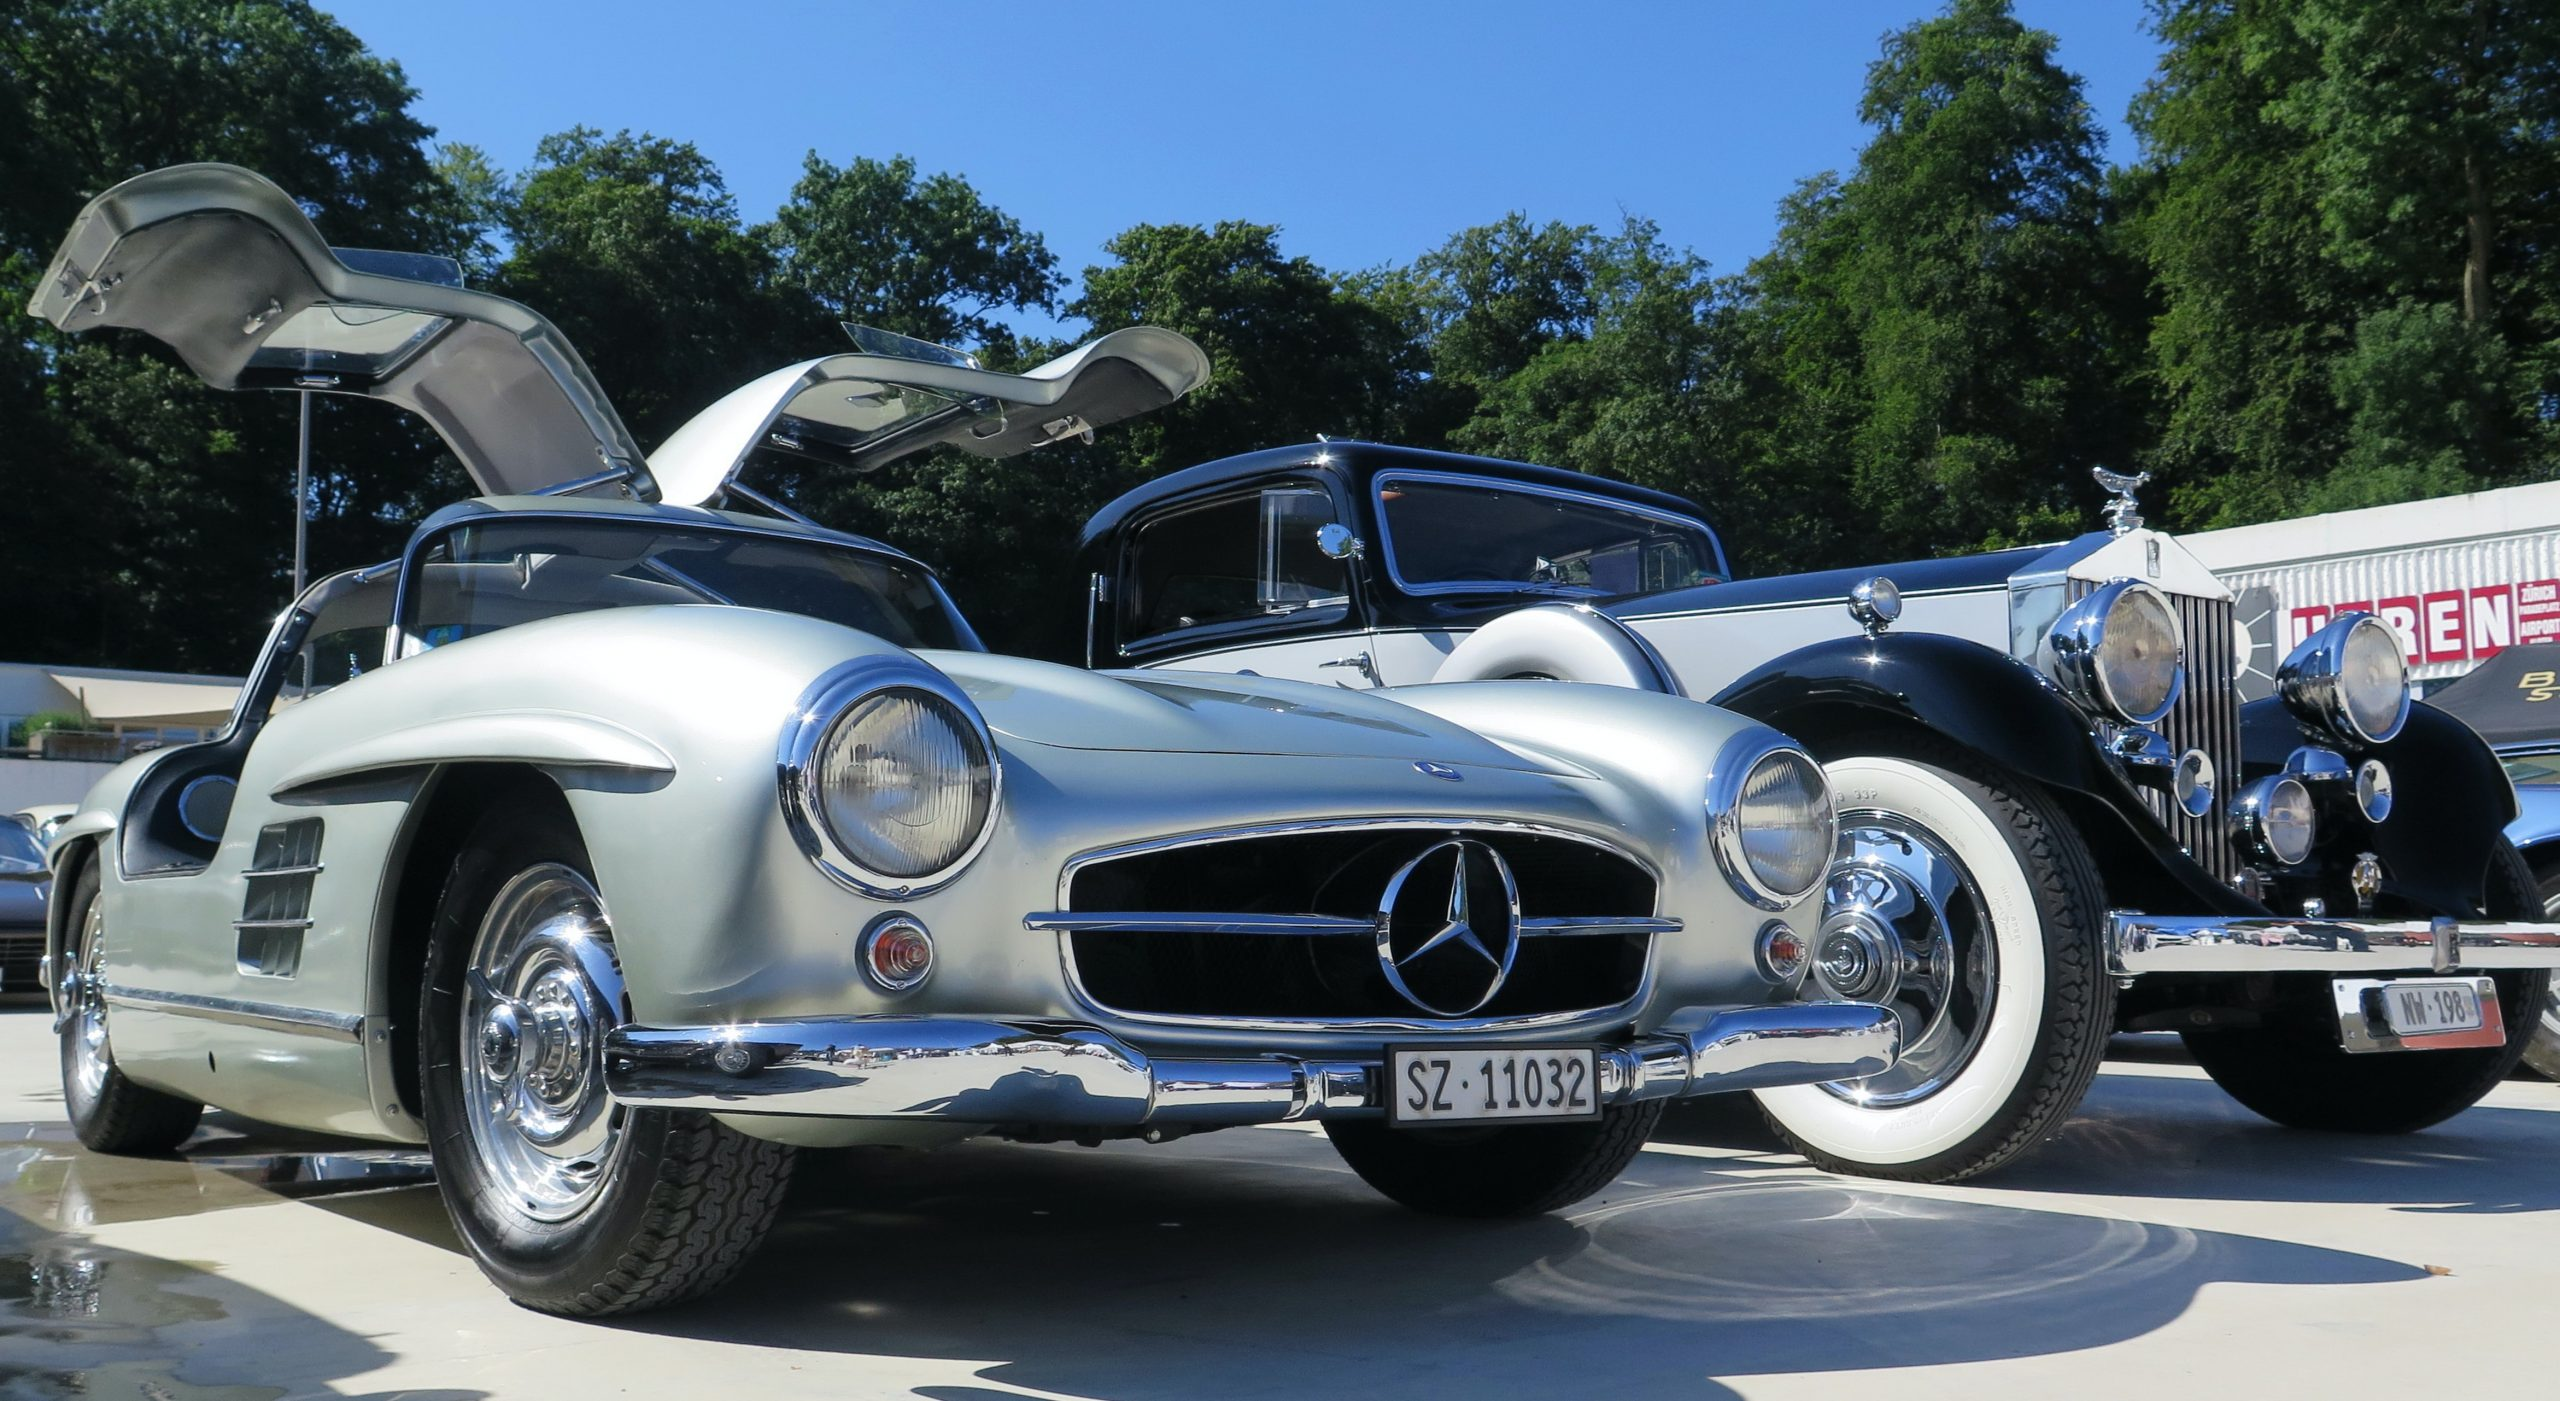 Mercedes 300 SL and a seldom Rolls Royce during the Dolder Classics in Zürich dated 11th August 2019